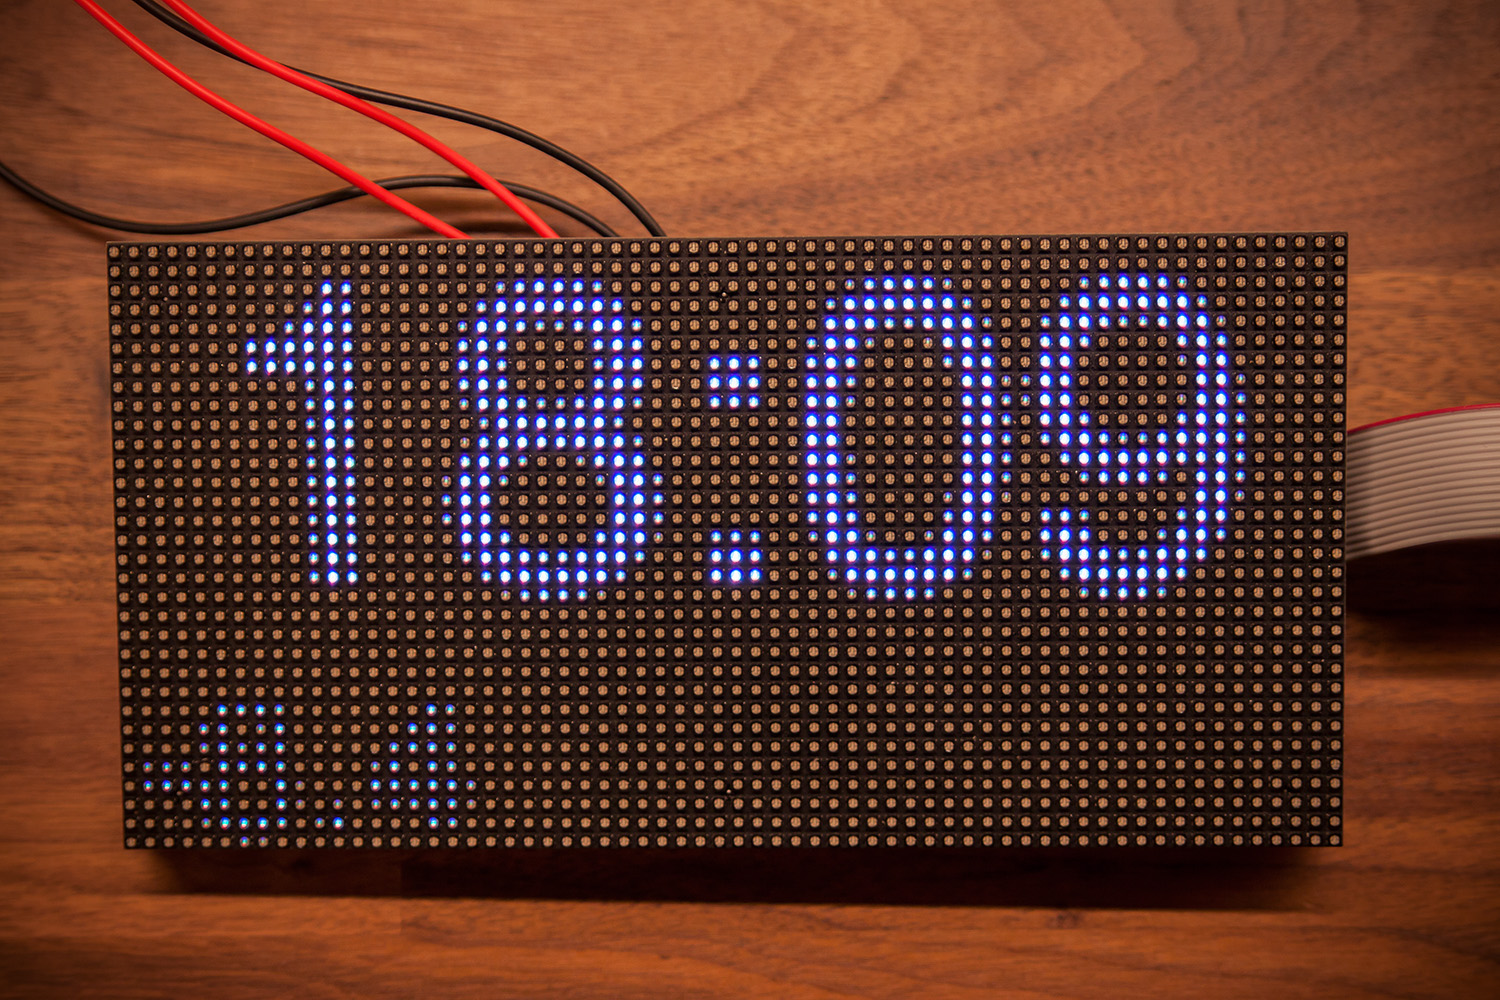 It takes two Raspberries to run a clock 8